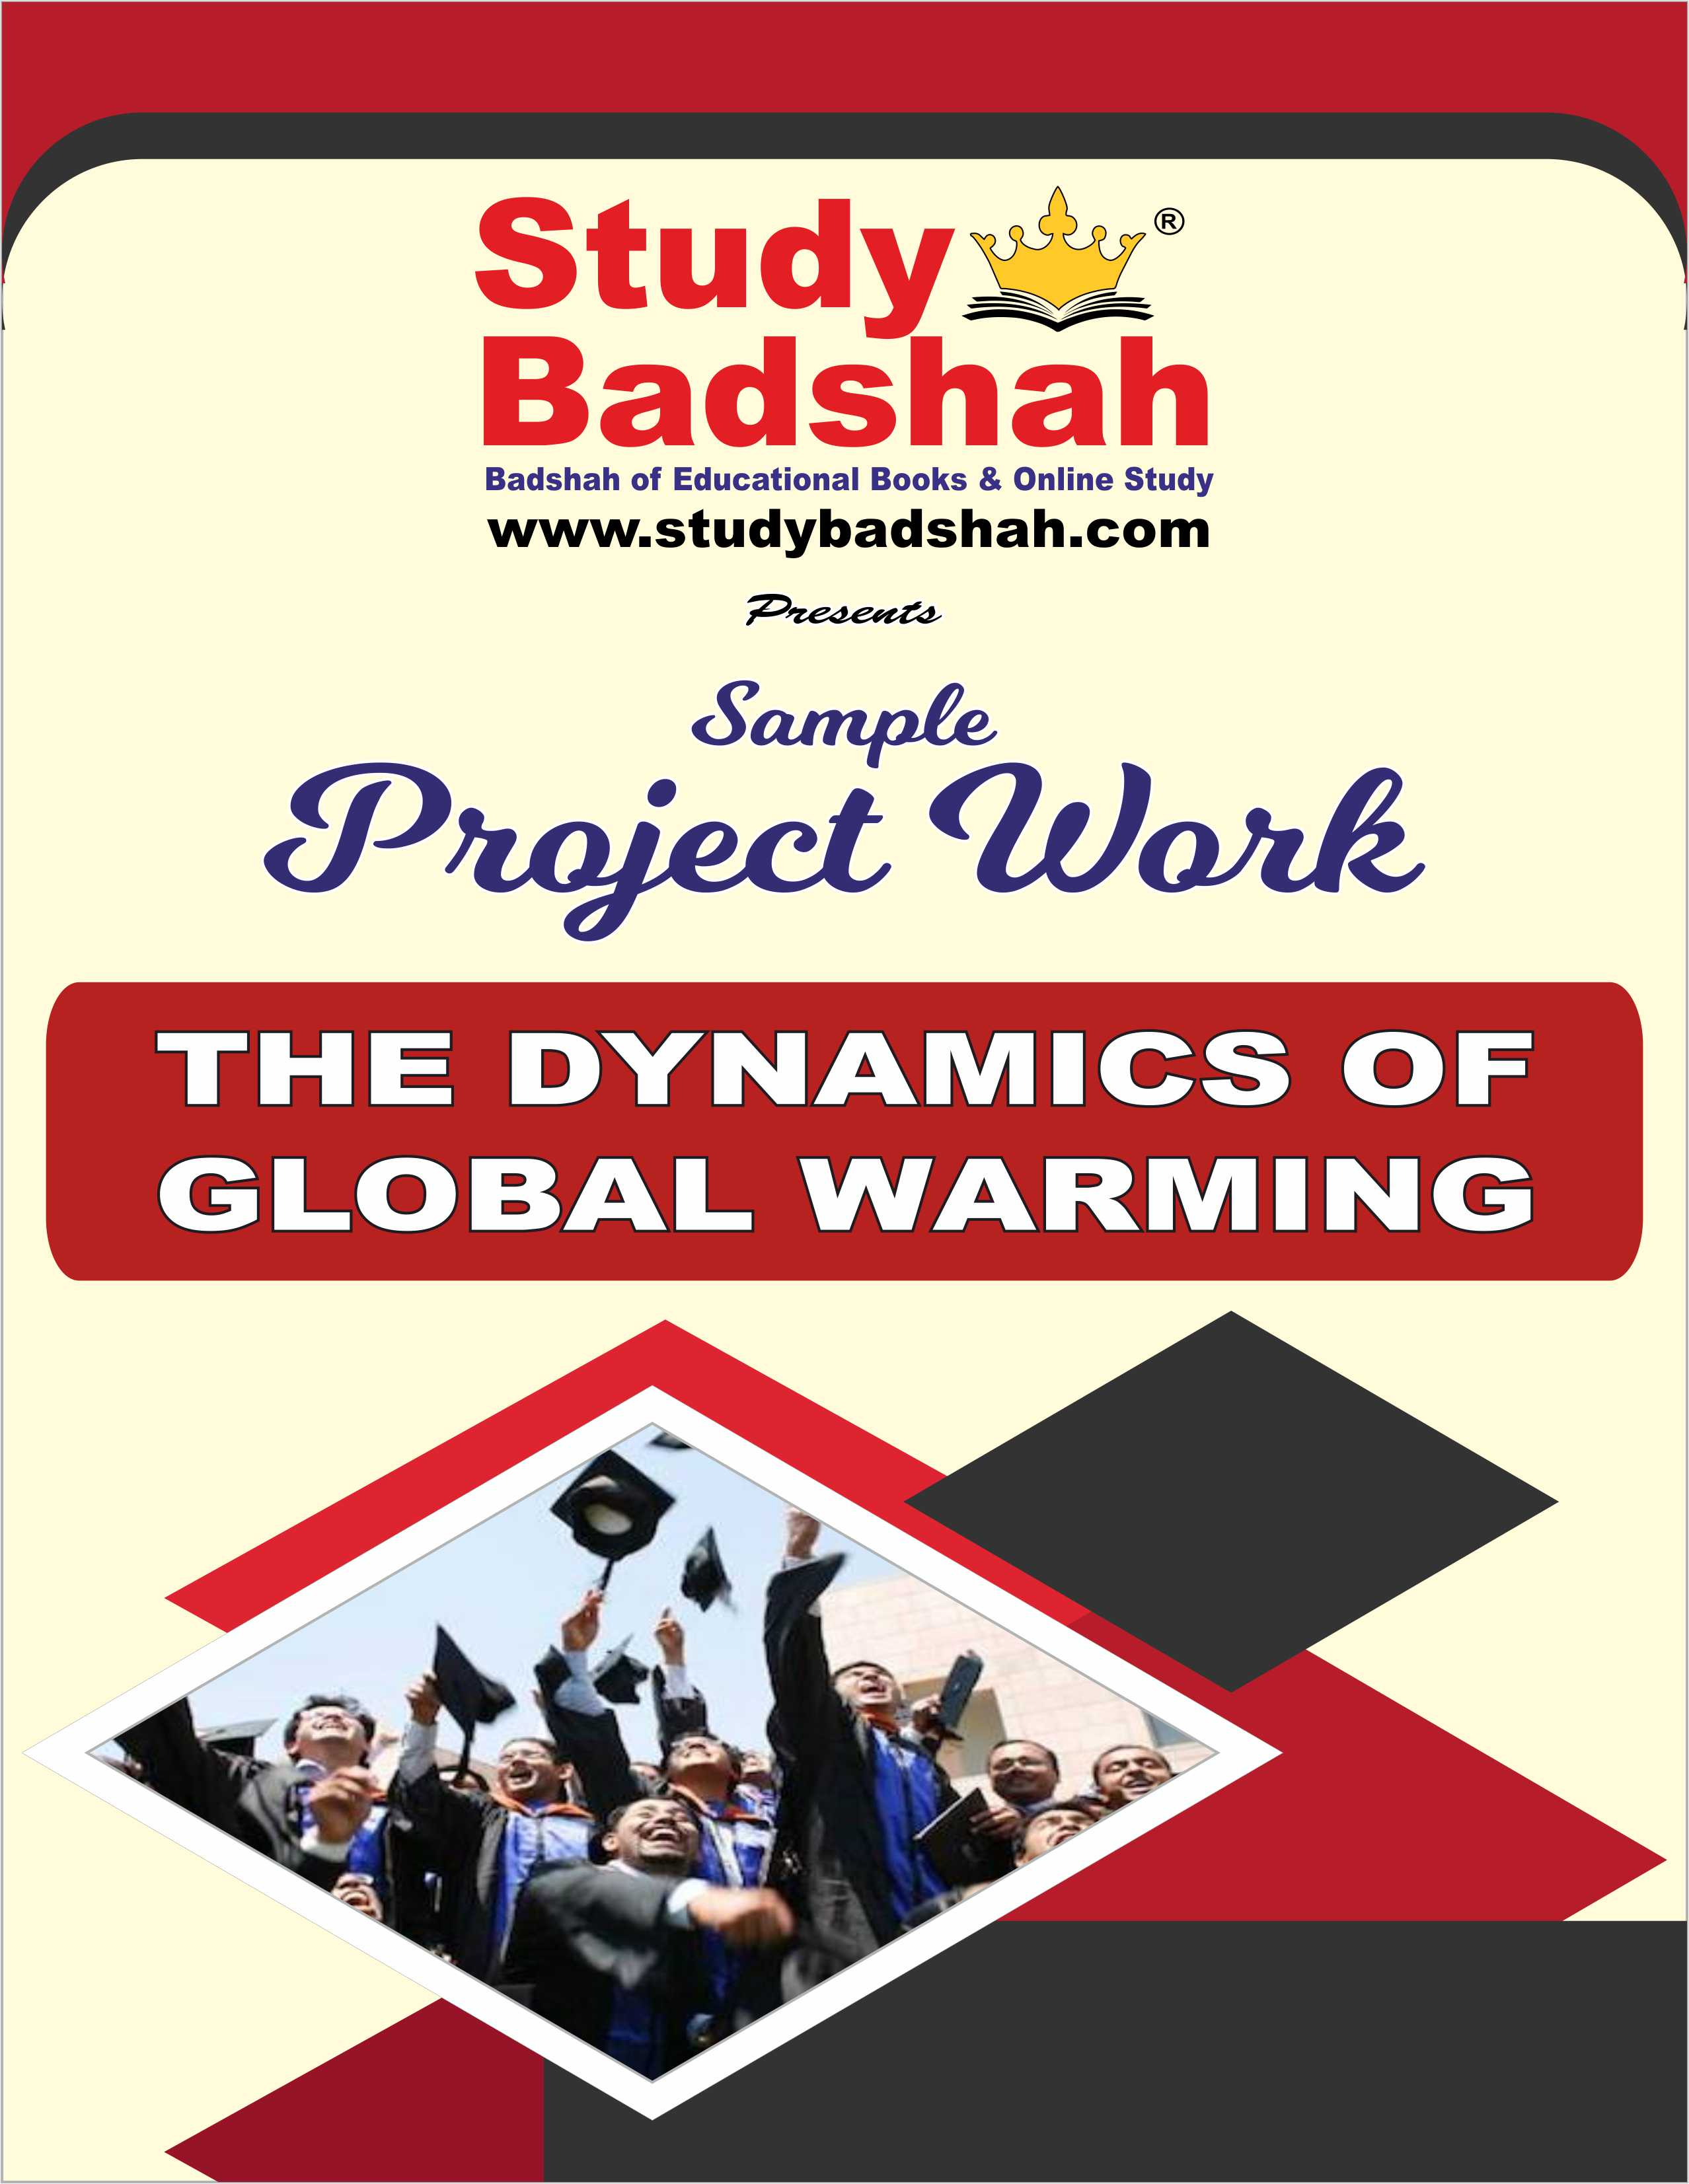 THE DYNAMICS OF GLOBAL WARMING